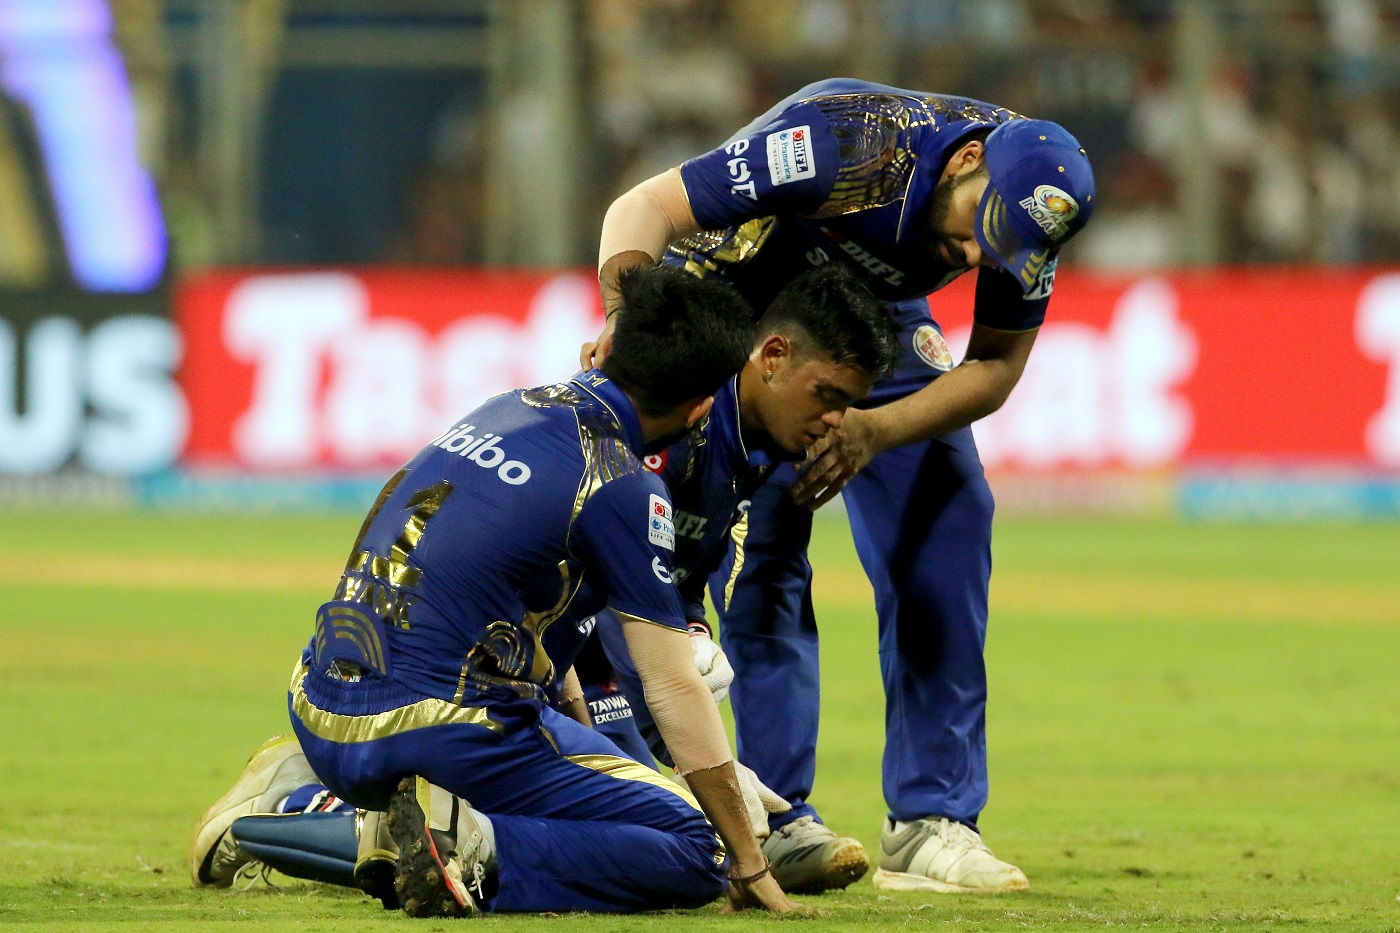 IPL 2018: Ishan Kishan Likely to be Fit for Rajasthan Royals Tie